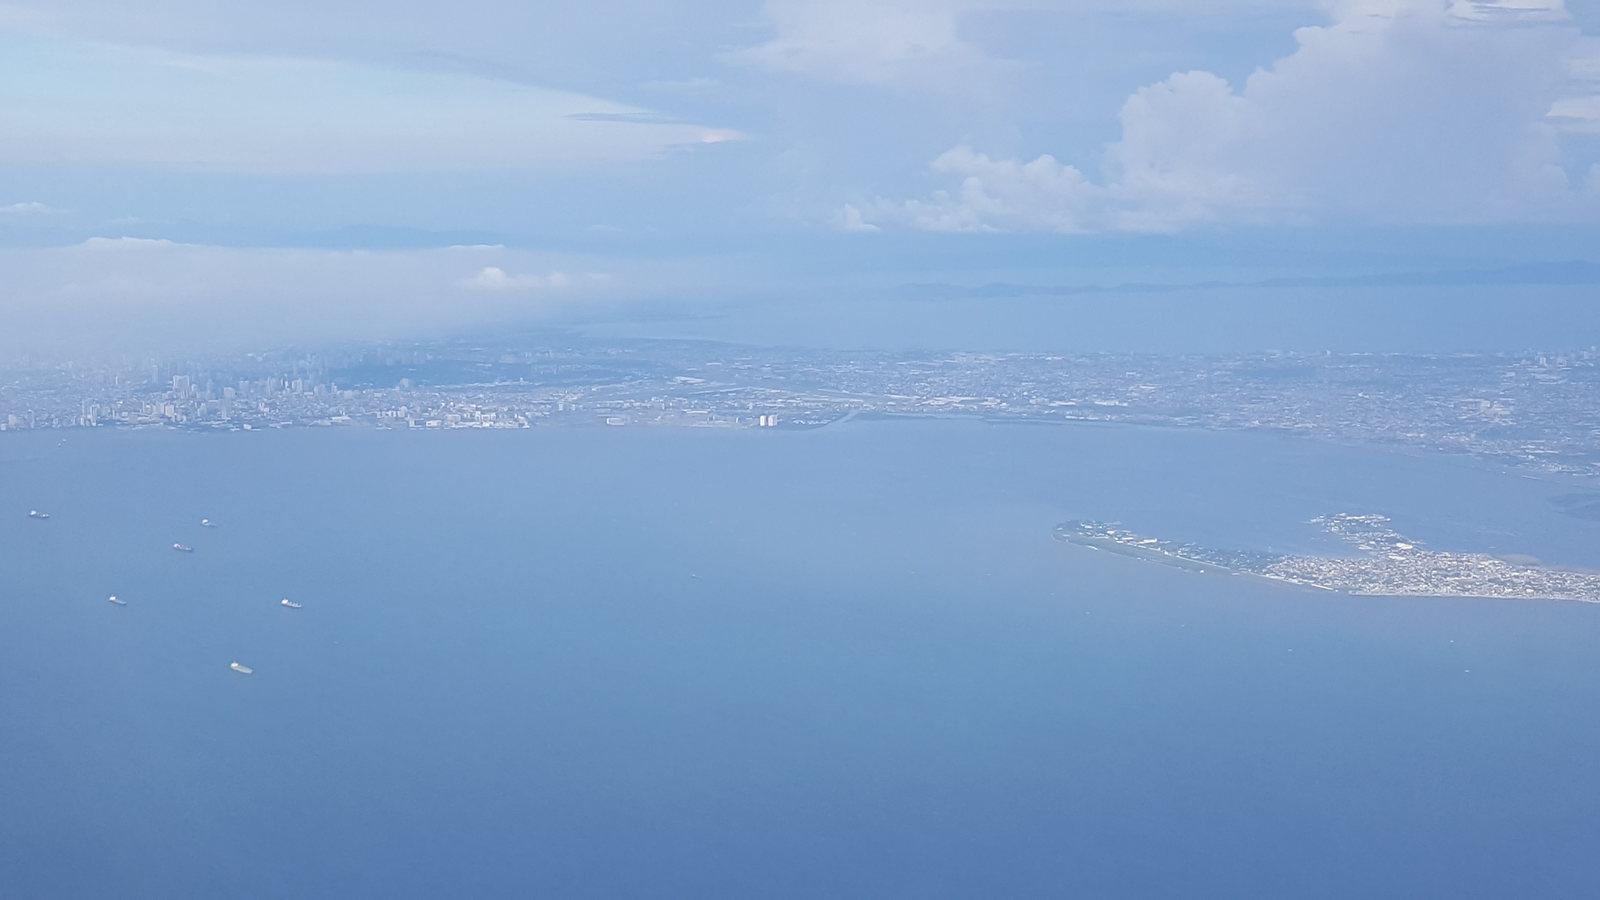 Sangley Point, Cavite and Manila Bay from the air